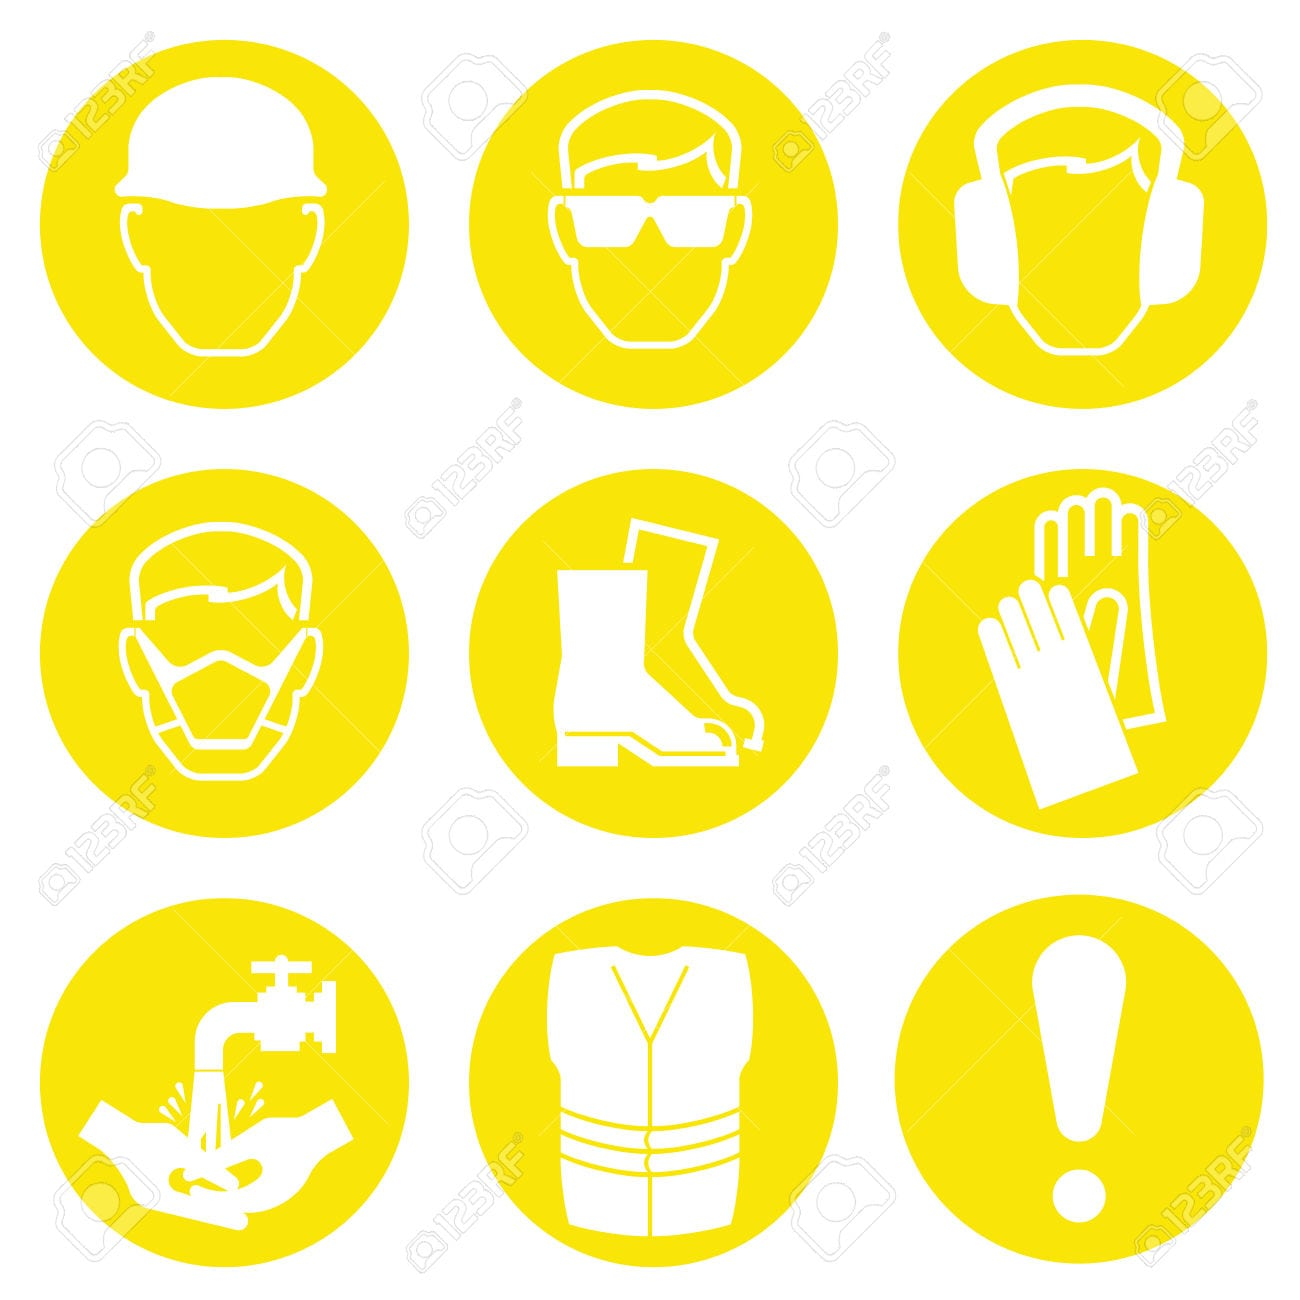 37755037-Yellow-Construction-Industry-Health-and-Safety-Icons-isolated-on-white-background-Stock-Vector